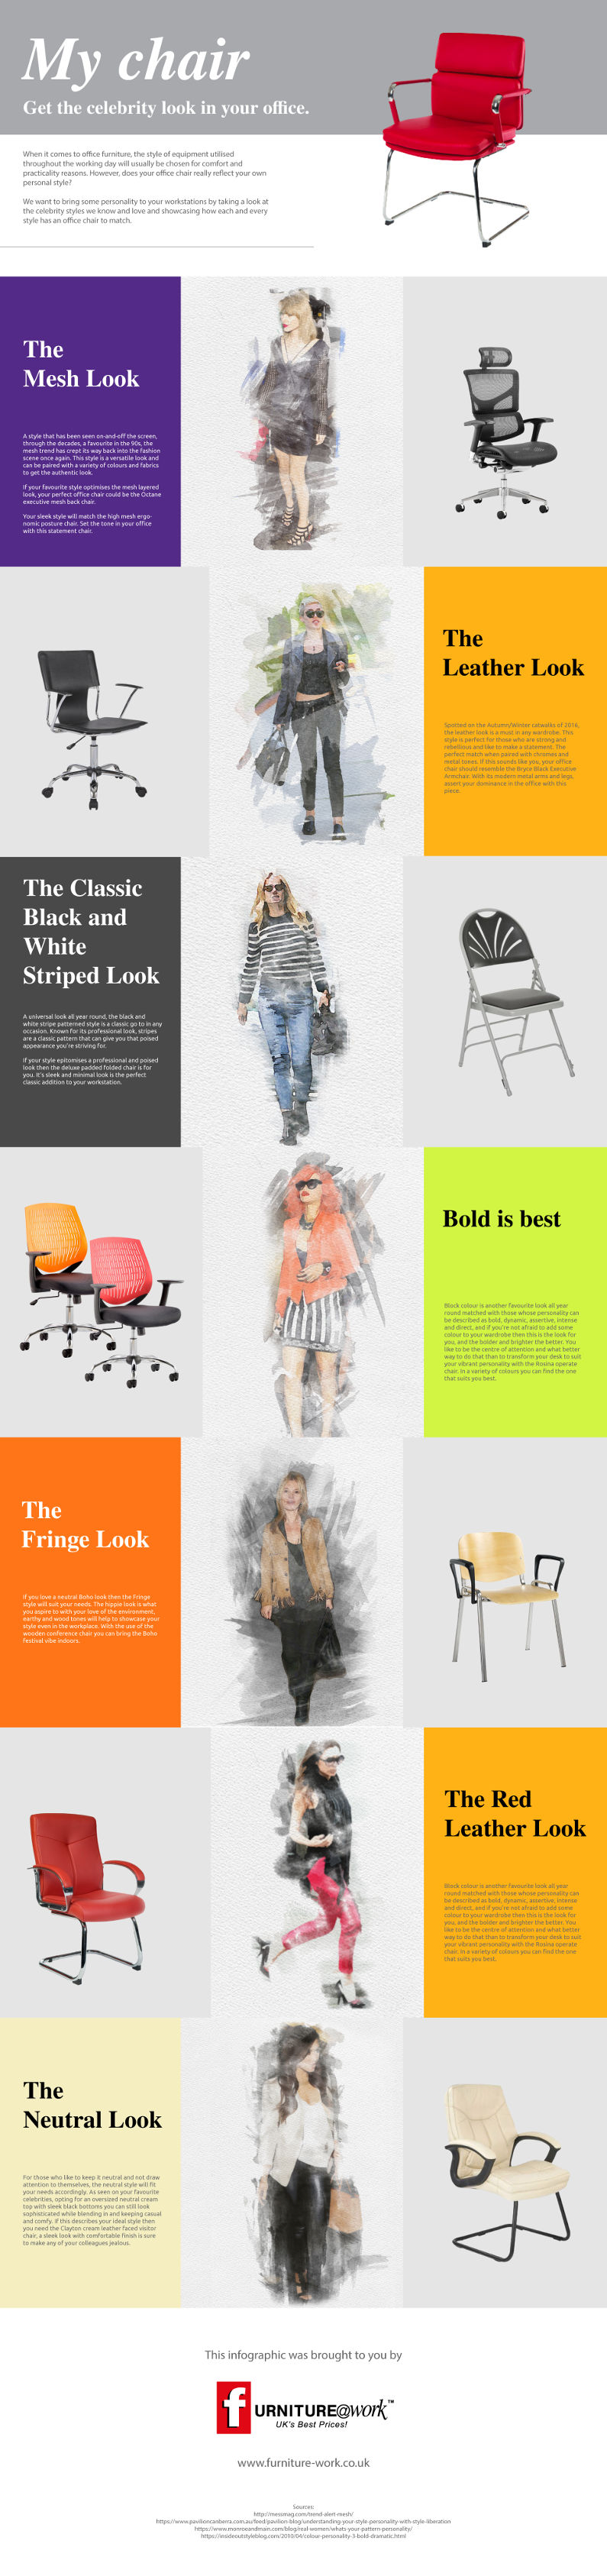 Furniture at work - infographic